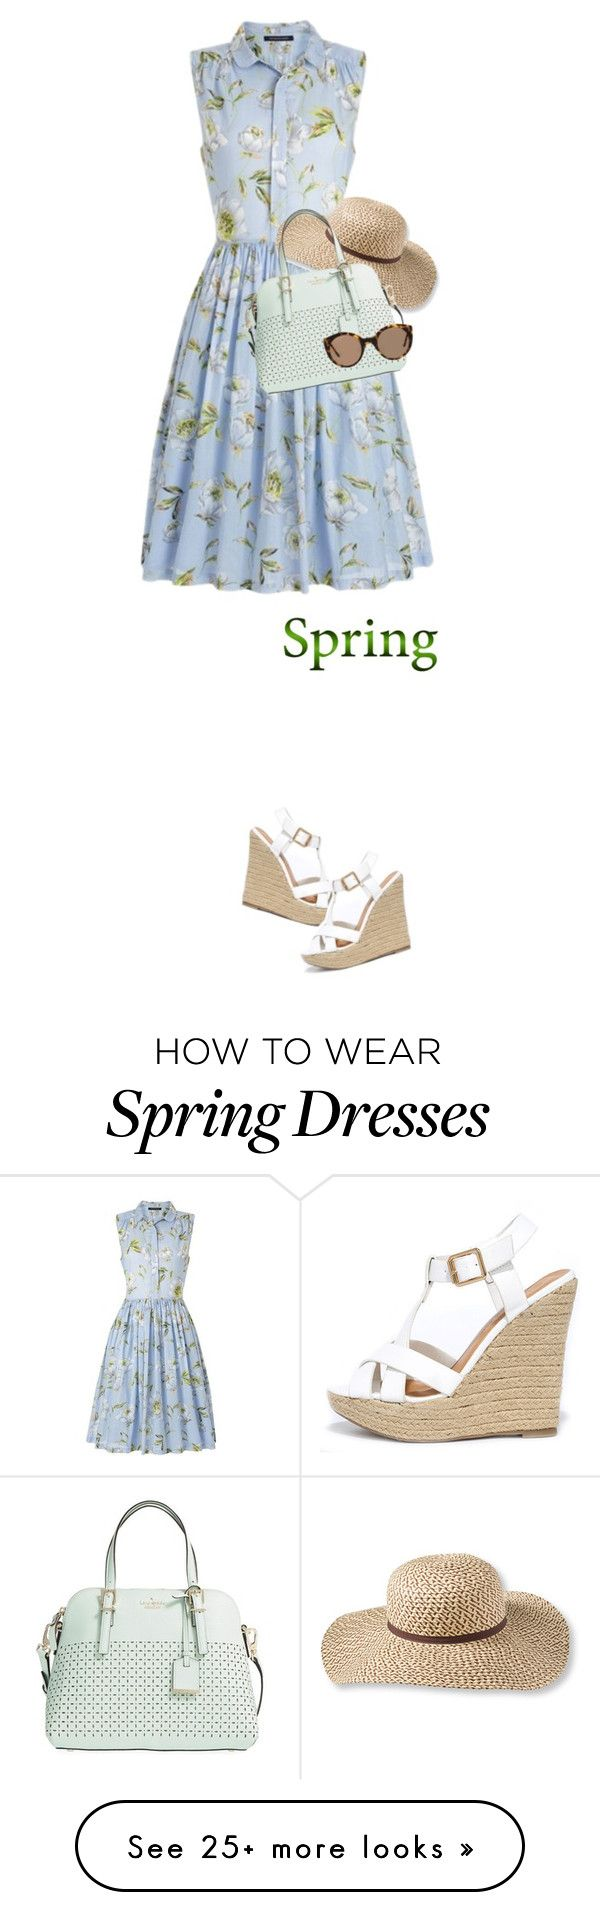 """Spring dress"" by maria-maldonado on Polyvore featuring French Connection, Wild Diva, L.L.Bean, Kate Spade, Illesteva and springdress"